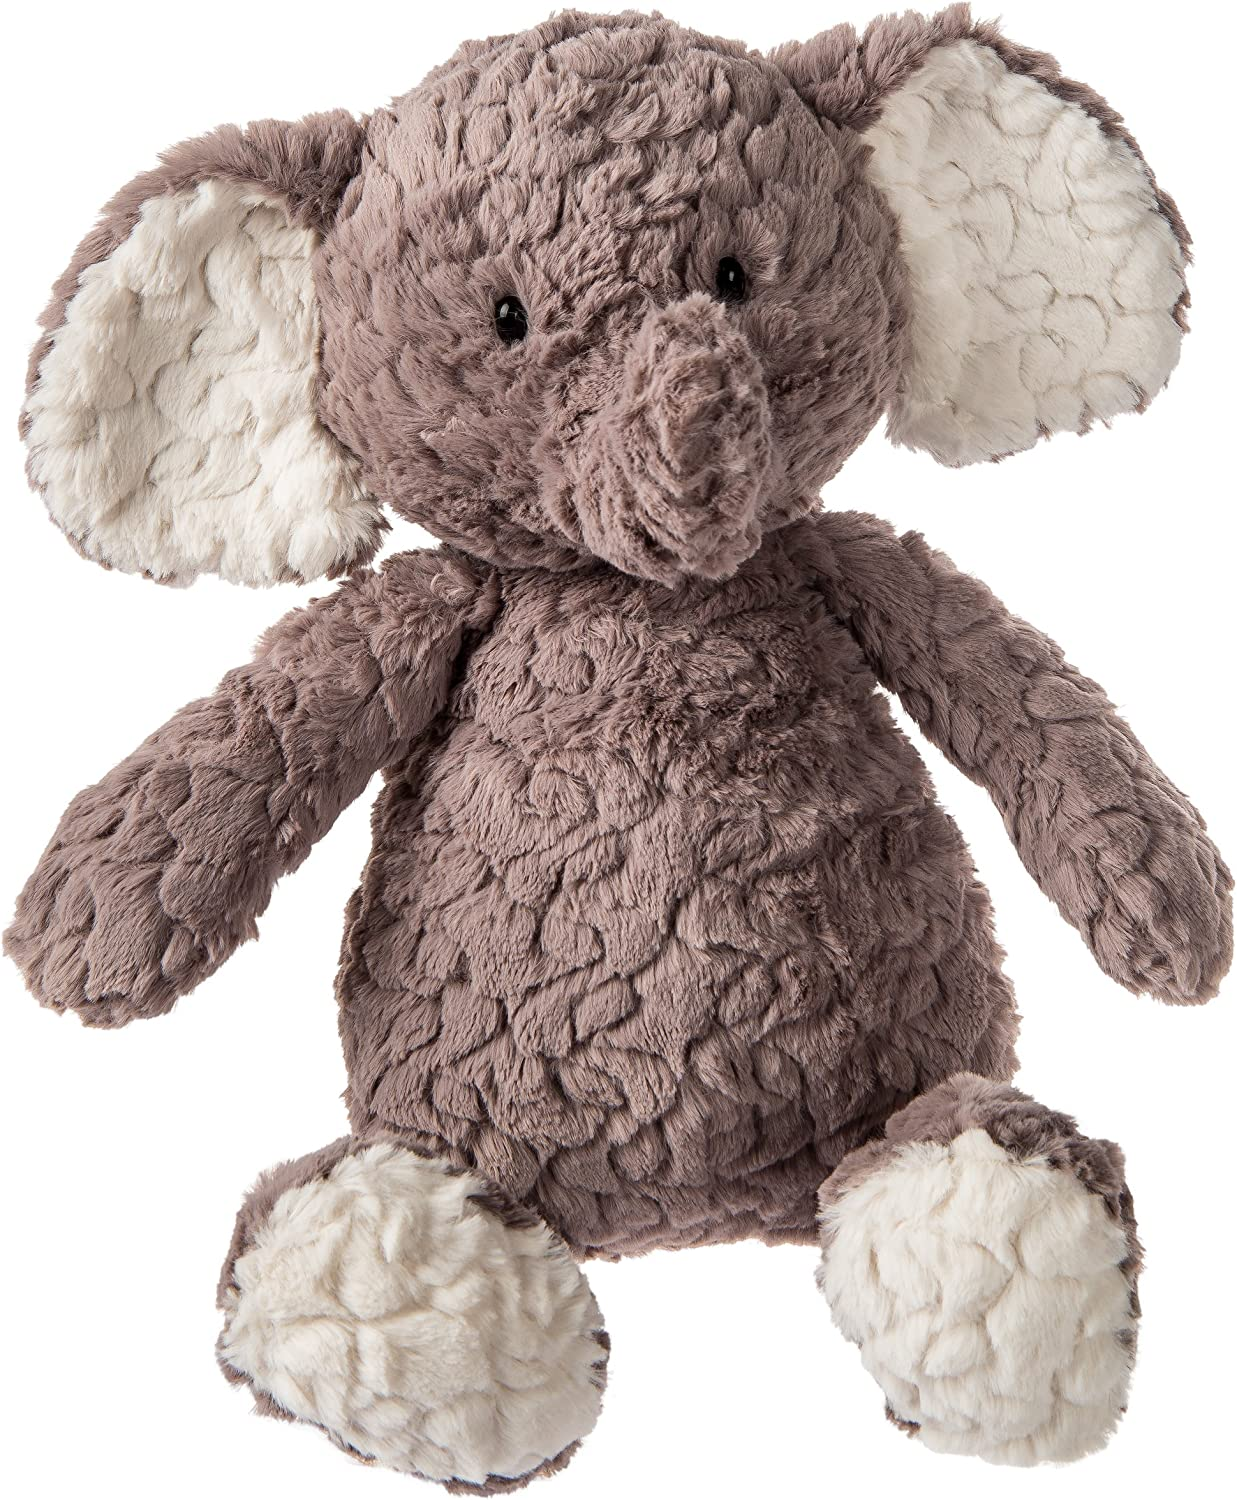 Mary Meyer Putty Elephant Max 76% Our shop OFFers the best service OFF Soft Toy Large Grey